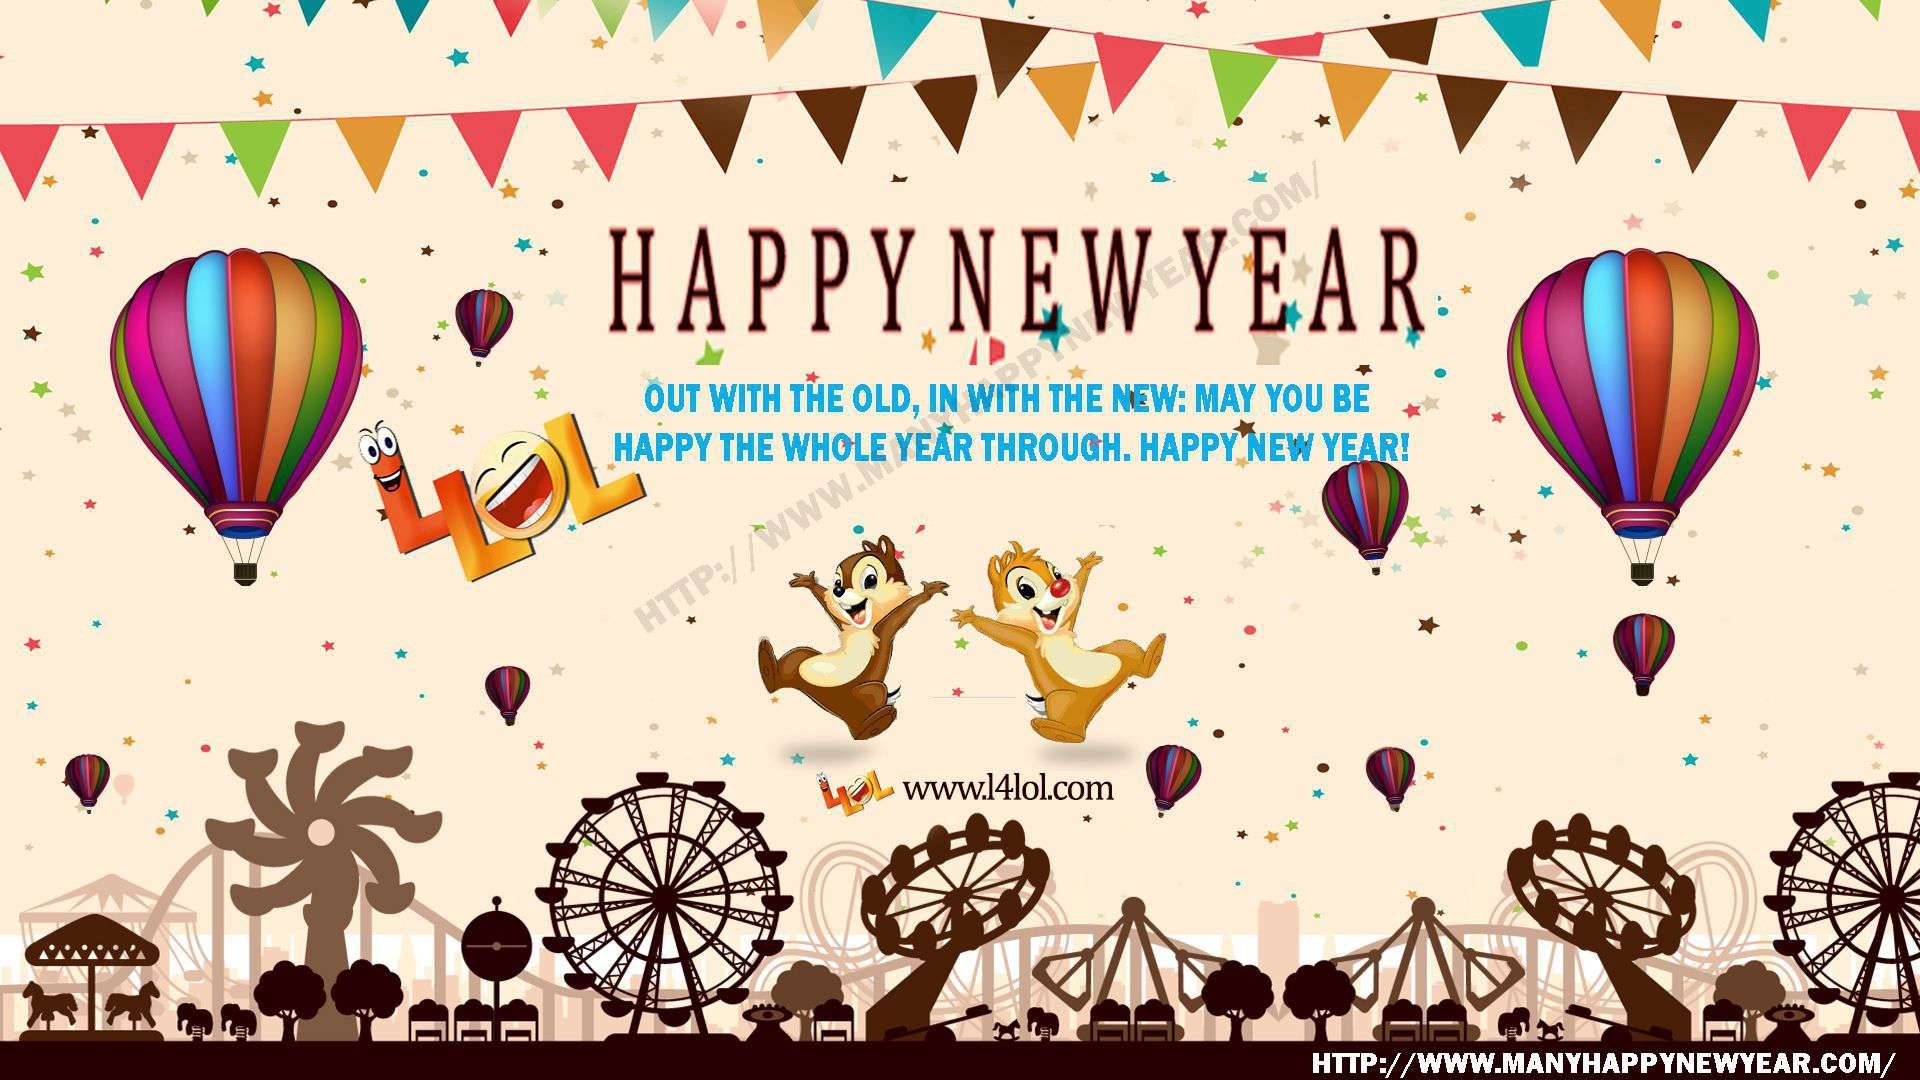 Happy New Year 2018 Hd Pictures Images Wallpapers Graphics - Happy Chinese New Year 2018 - HD Wallpaper